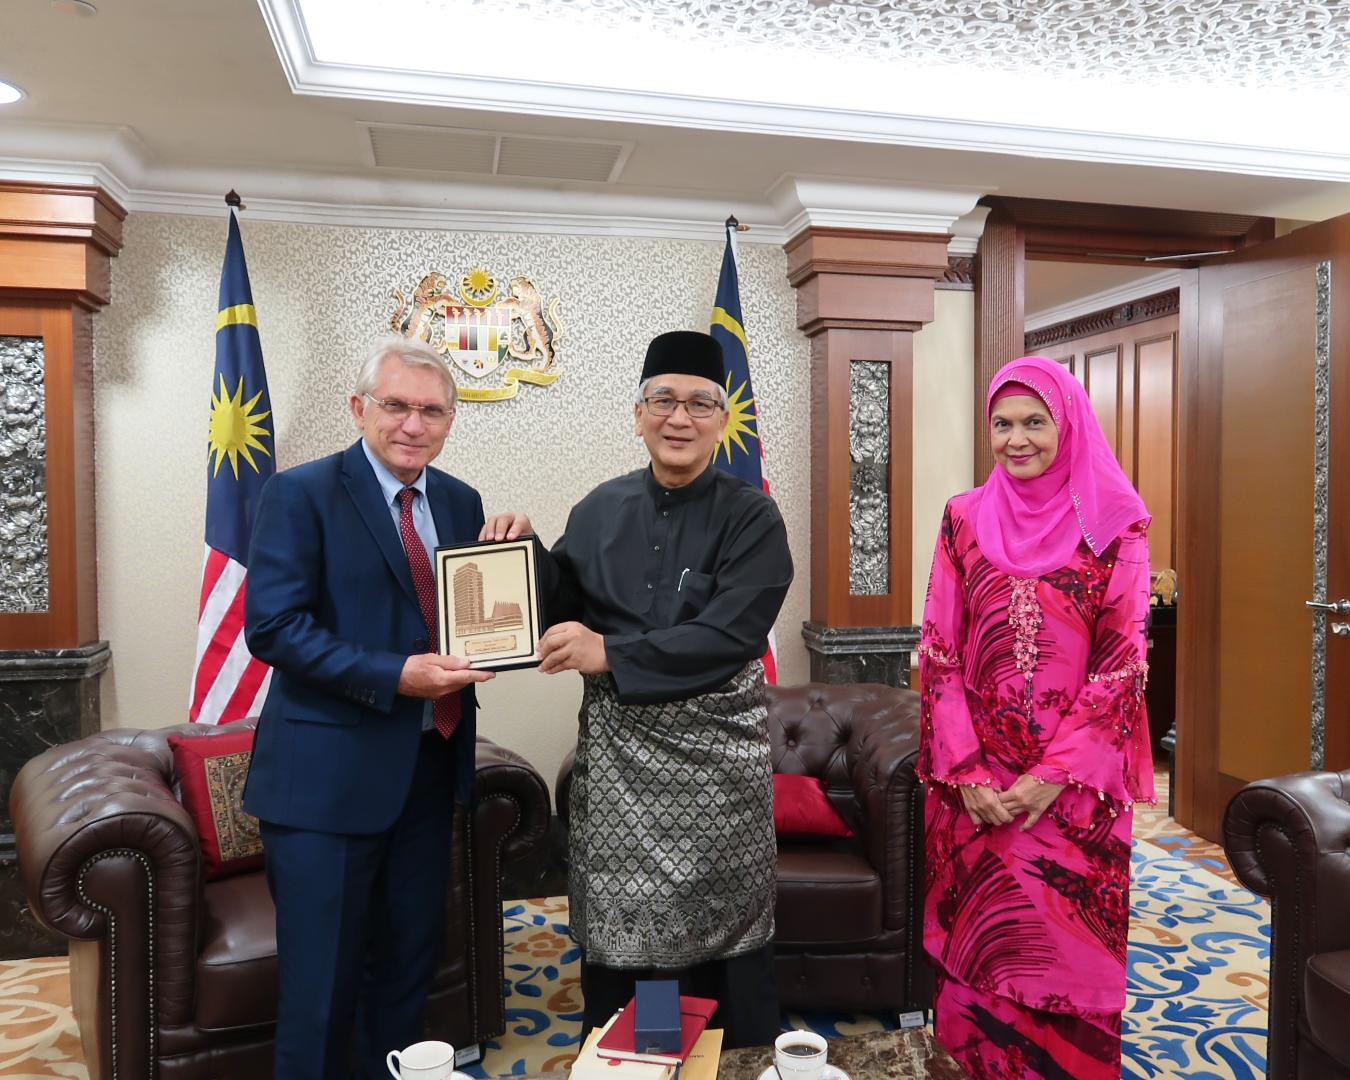 Wolfgang Hruschka, KAS Malaysia Country Director, Dato' Mohamad Ariff Bin Md. Yusof, Speaker of the House of Representatives, Parlament of Malaysia (middle) and Datuk Roosme Hamzah, Secretary of the House of Representatives..